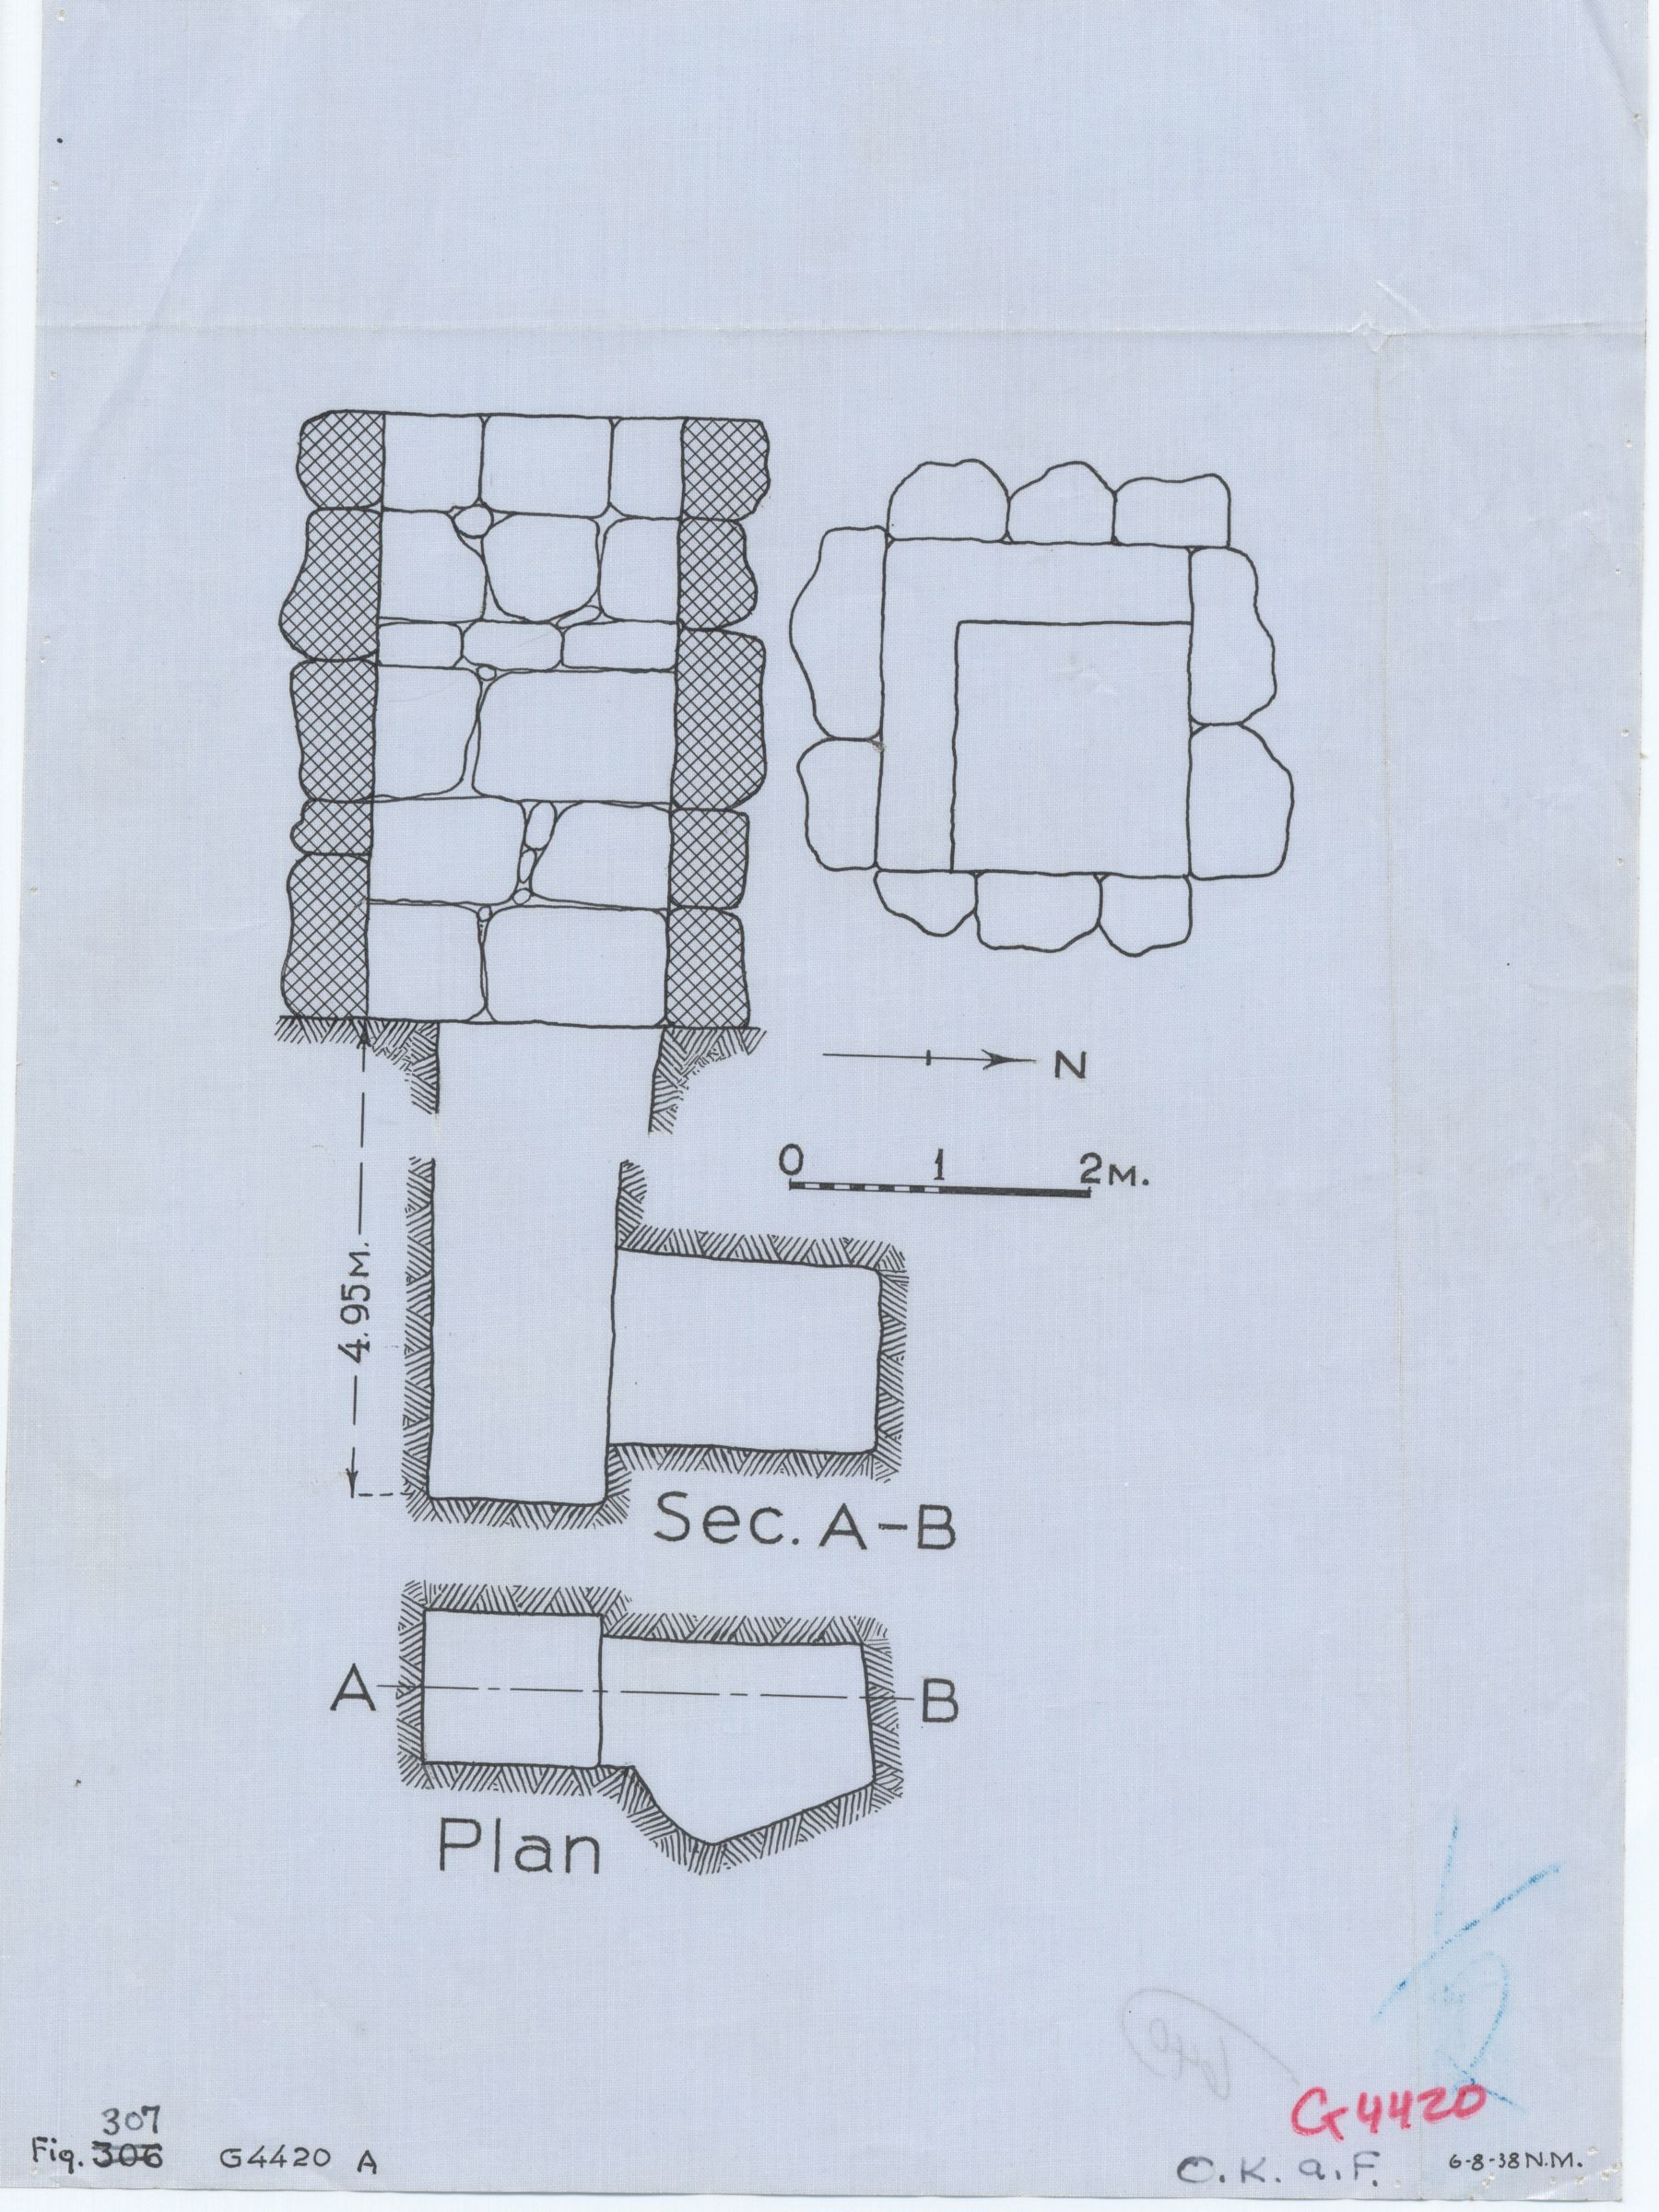 Maps and plans: G 4420, Shaft A